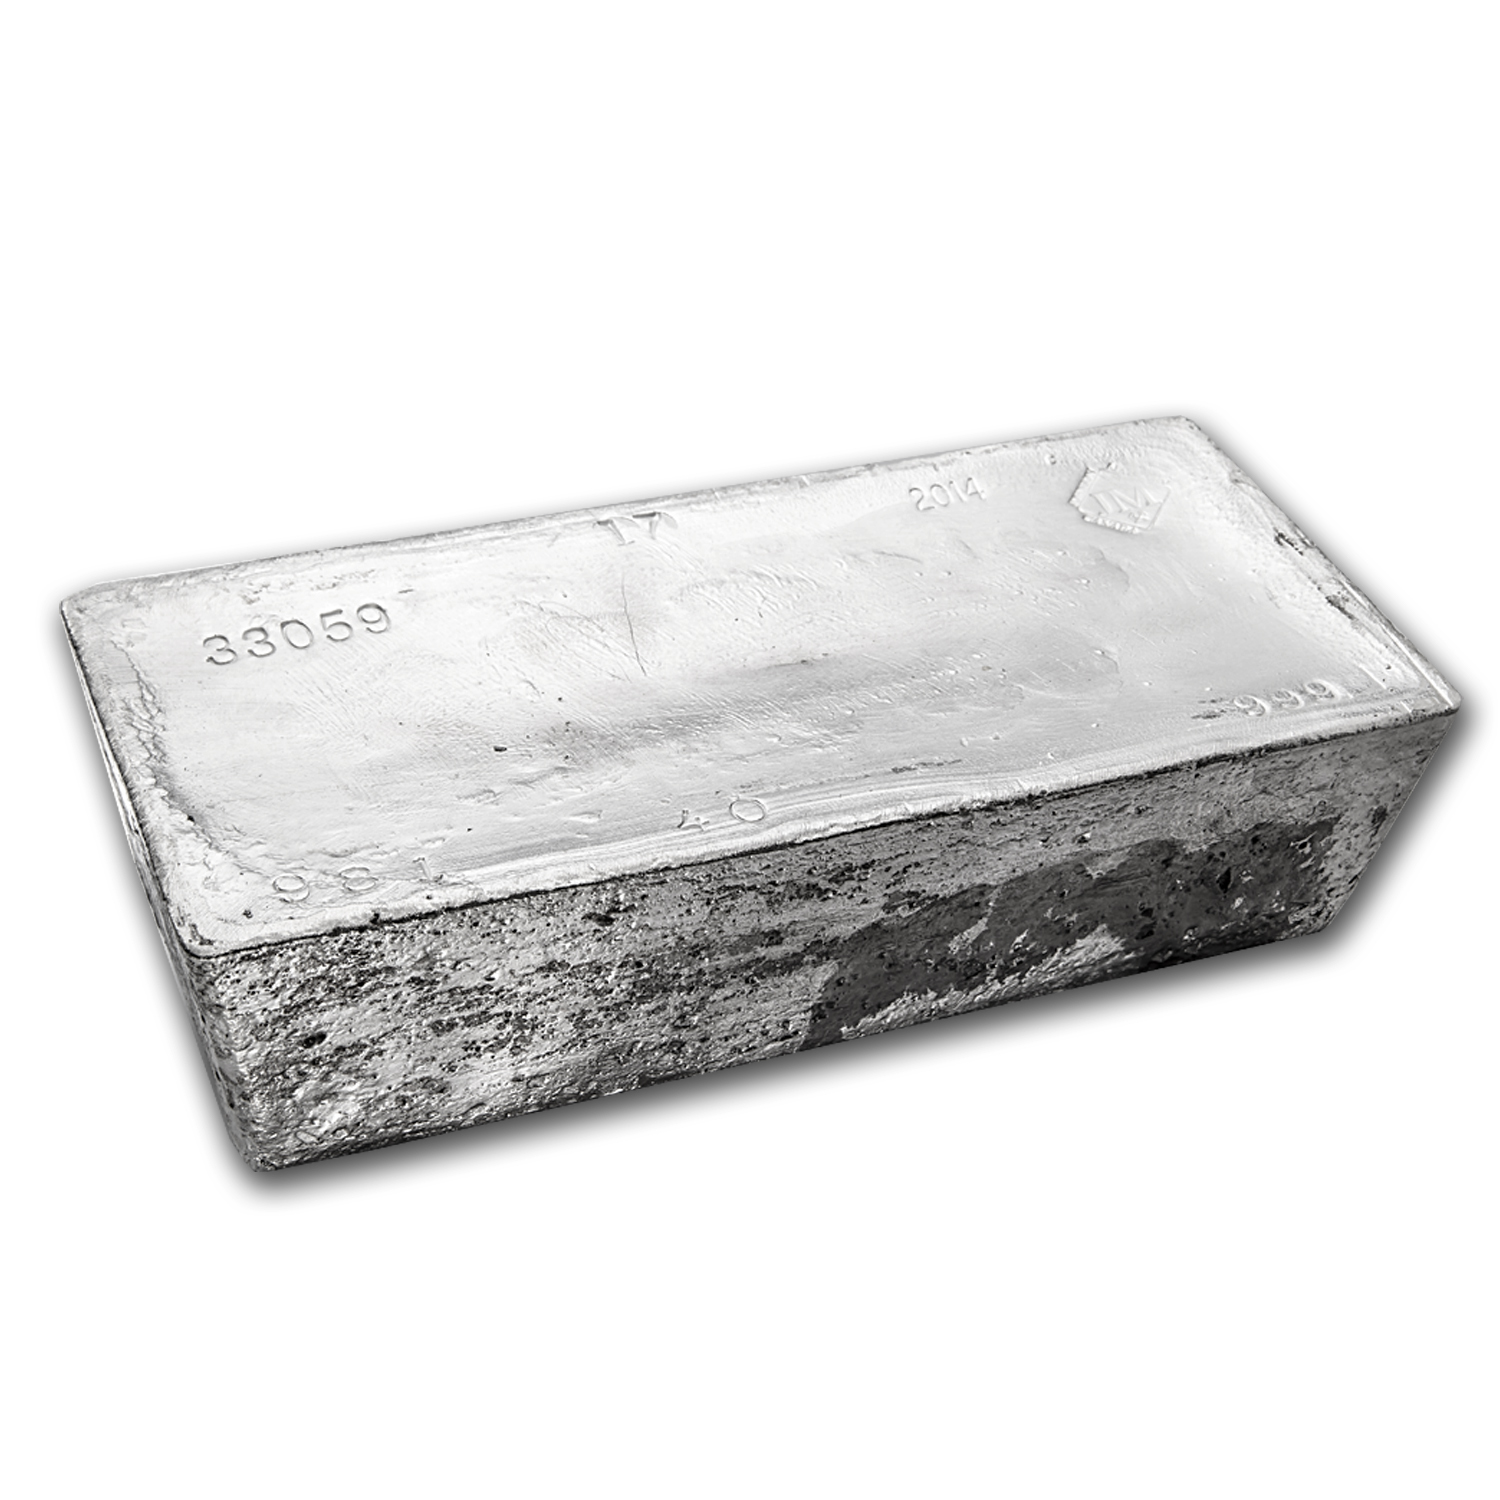 902.6 oz Silver Bar - Johnson Matthey